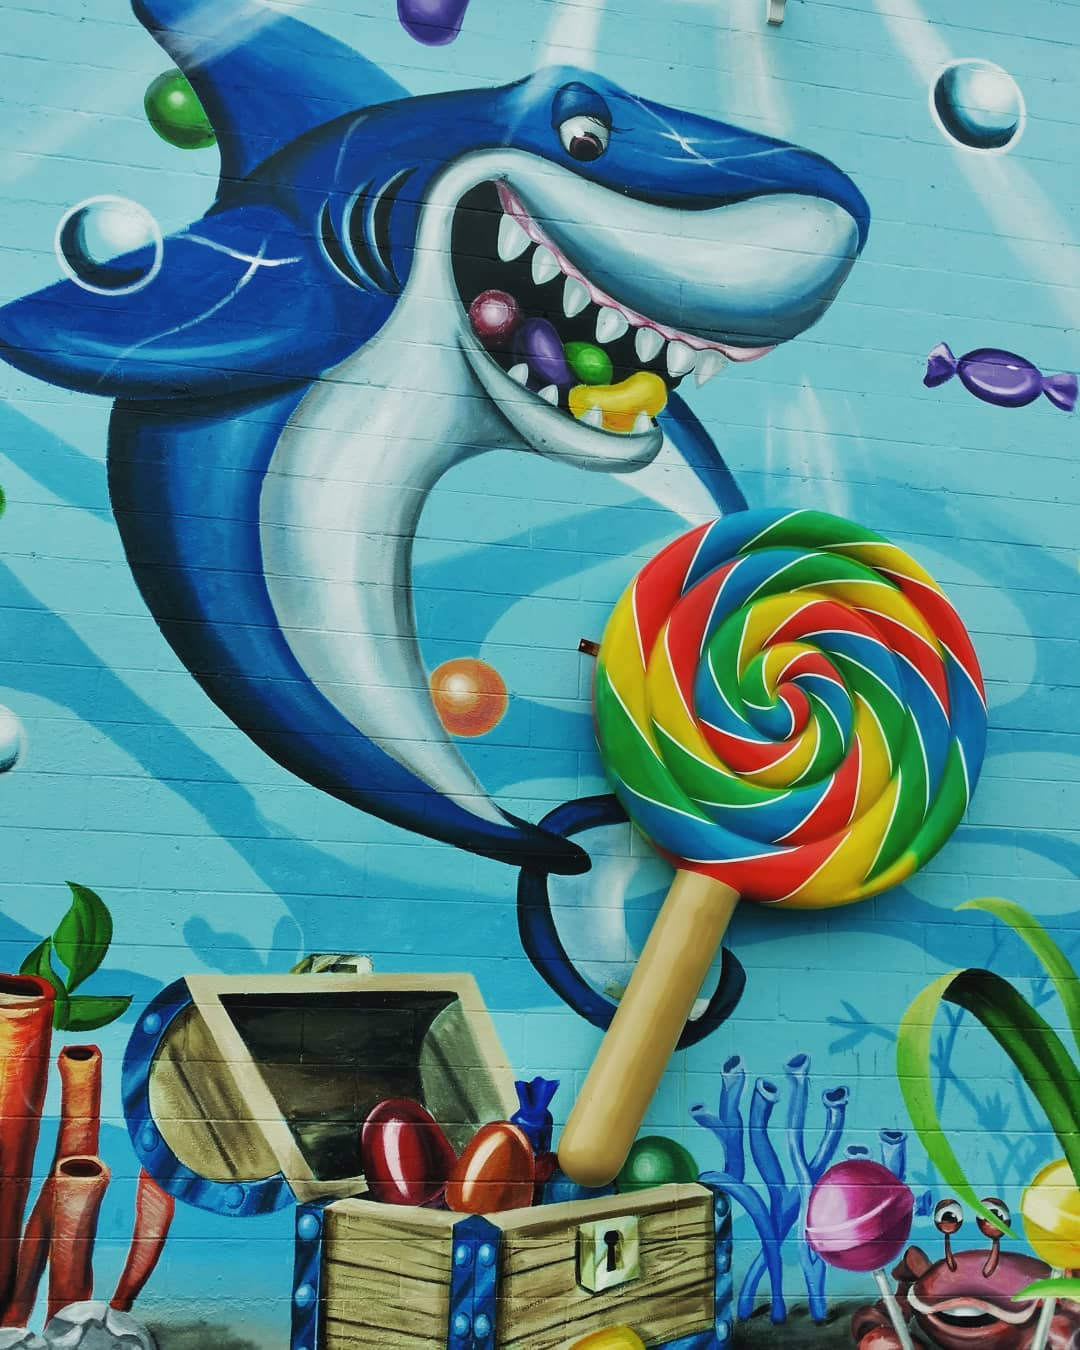 LBI Giant shark mural. Guess he has a sweet tooth         …